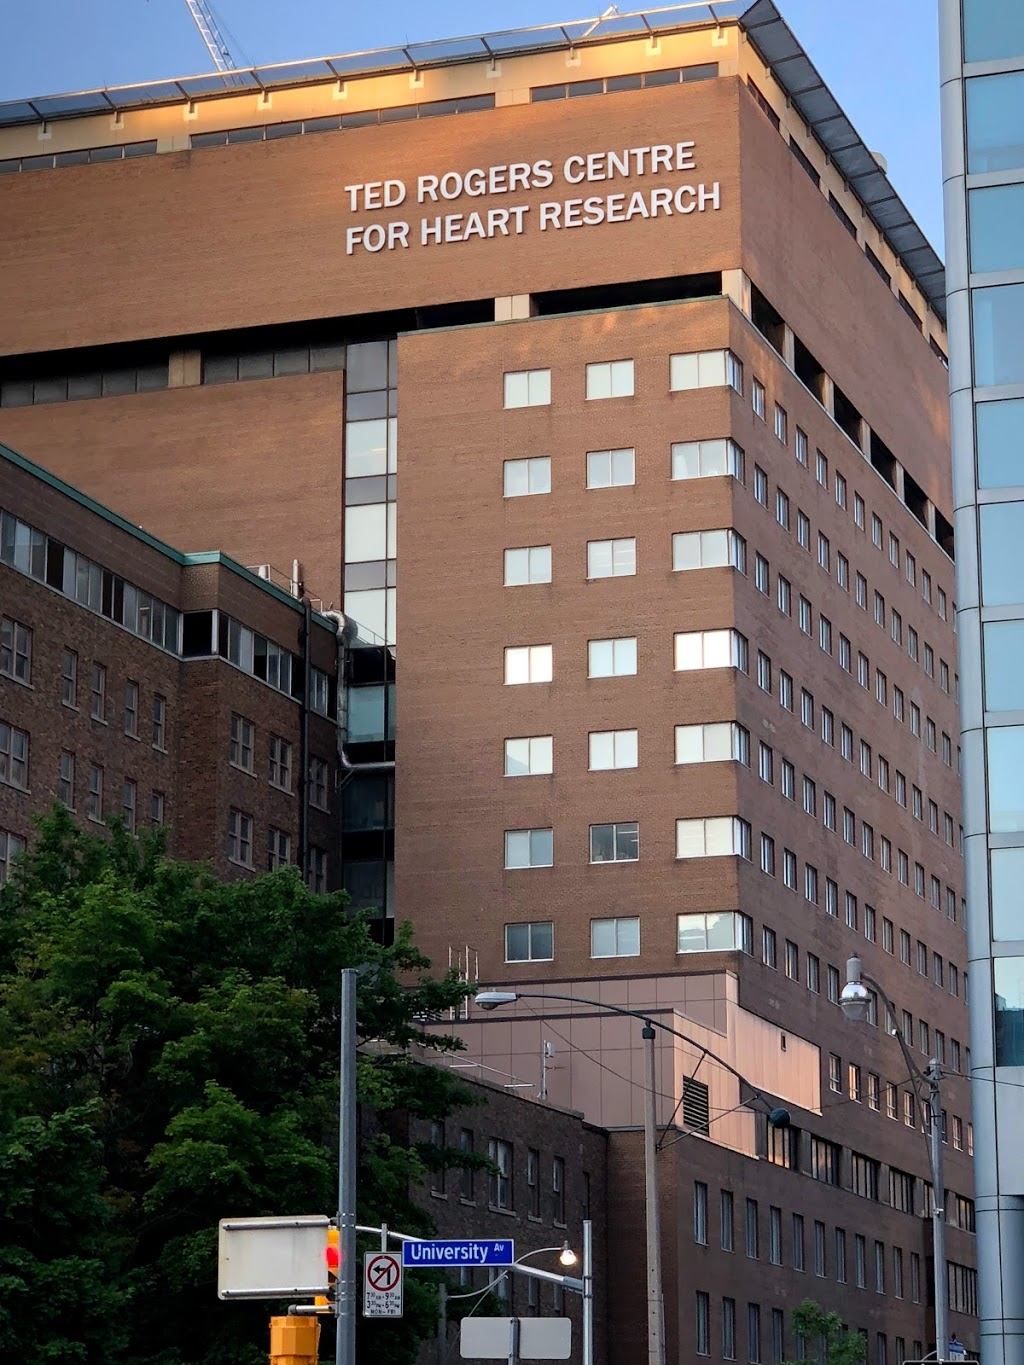 Ted Rogers Centre For Heart Research | hospital | 661 University Ave, Toronto, ON M5G 1X8, Canada | 4169468305 OR +1 416-946-8305